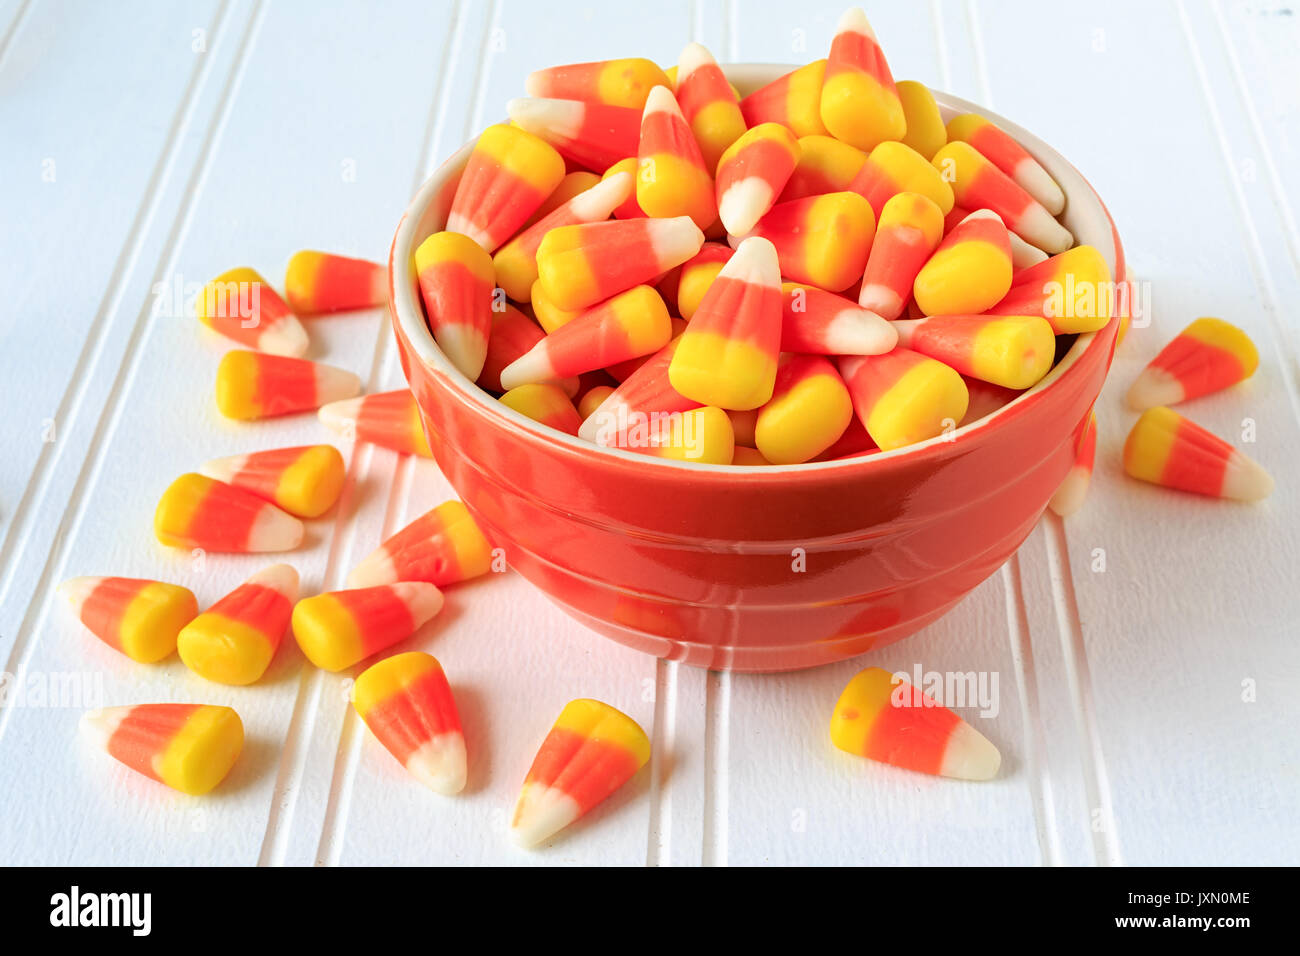 Candy corn in a ceramic bowl. - Stock Image